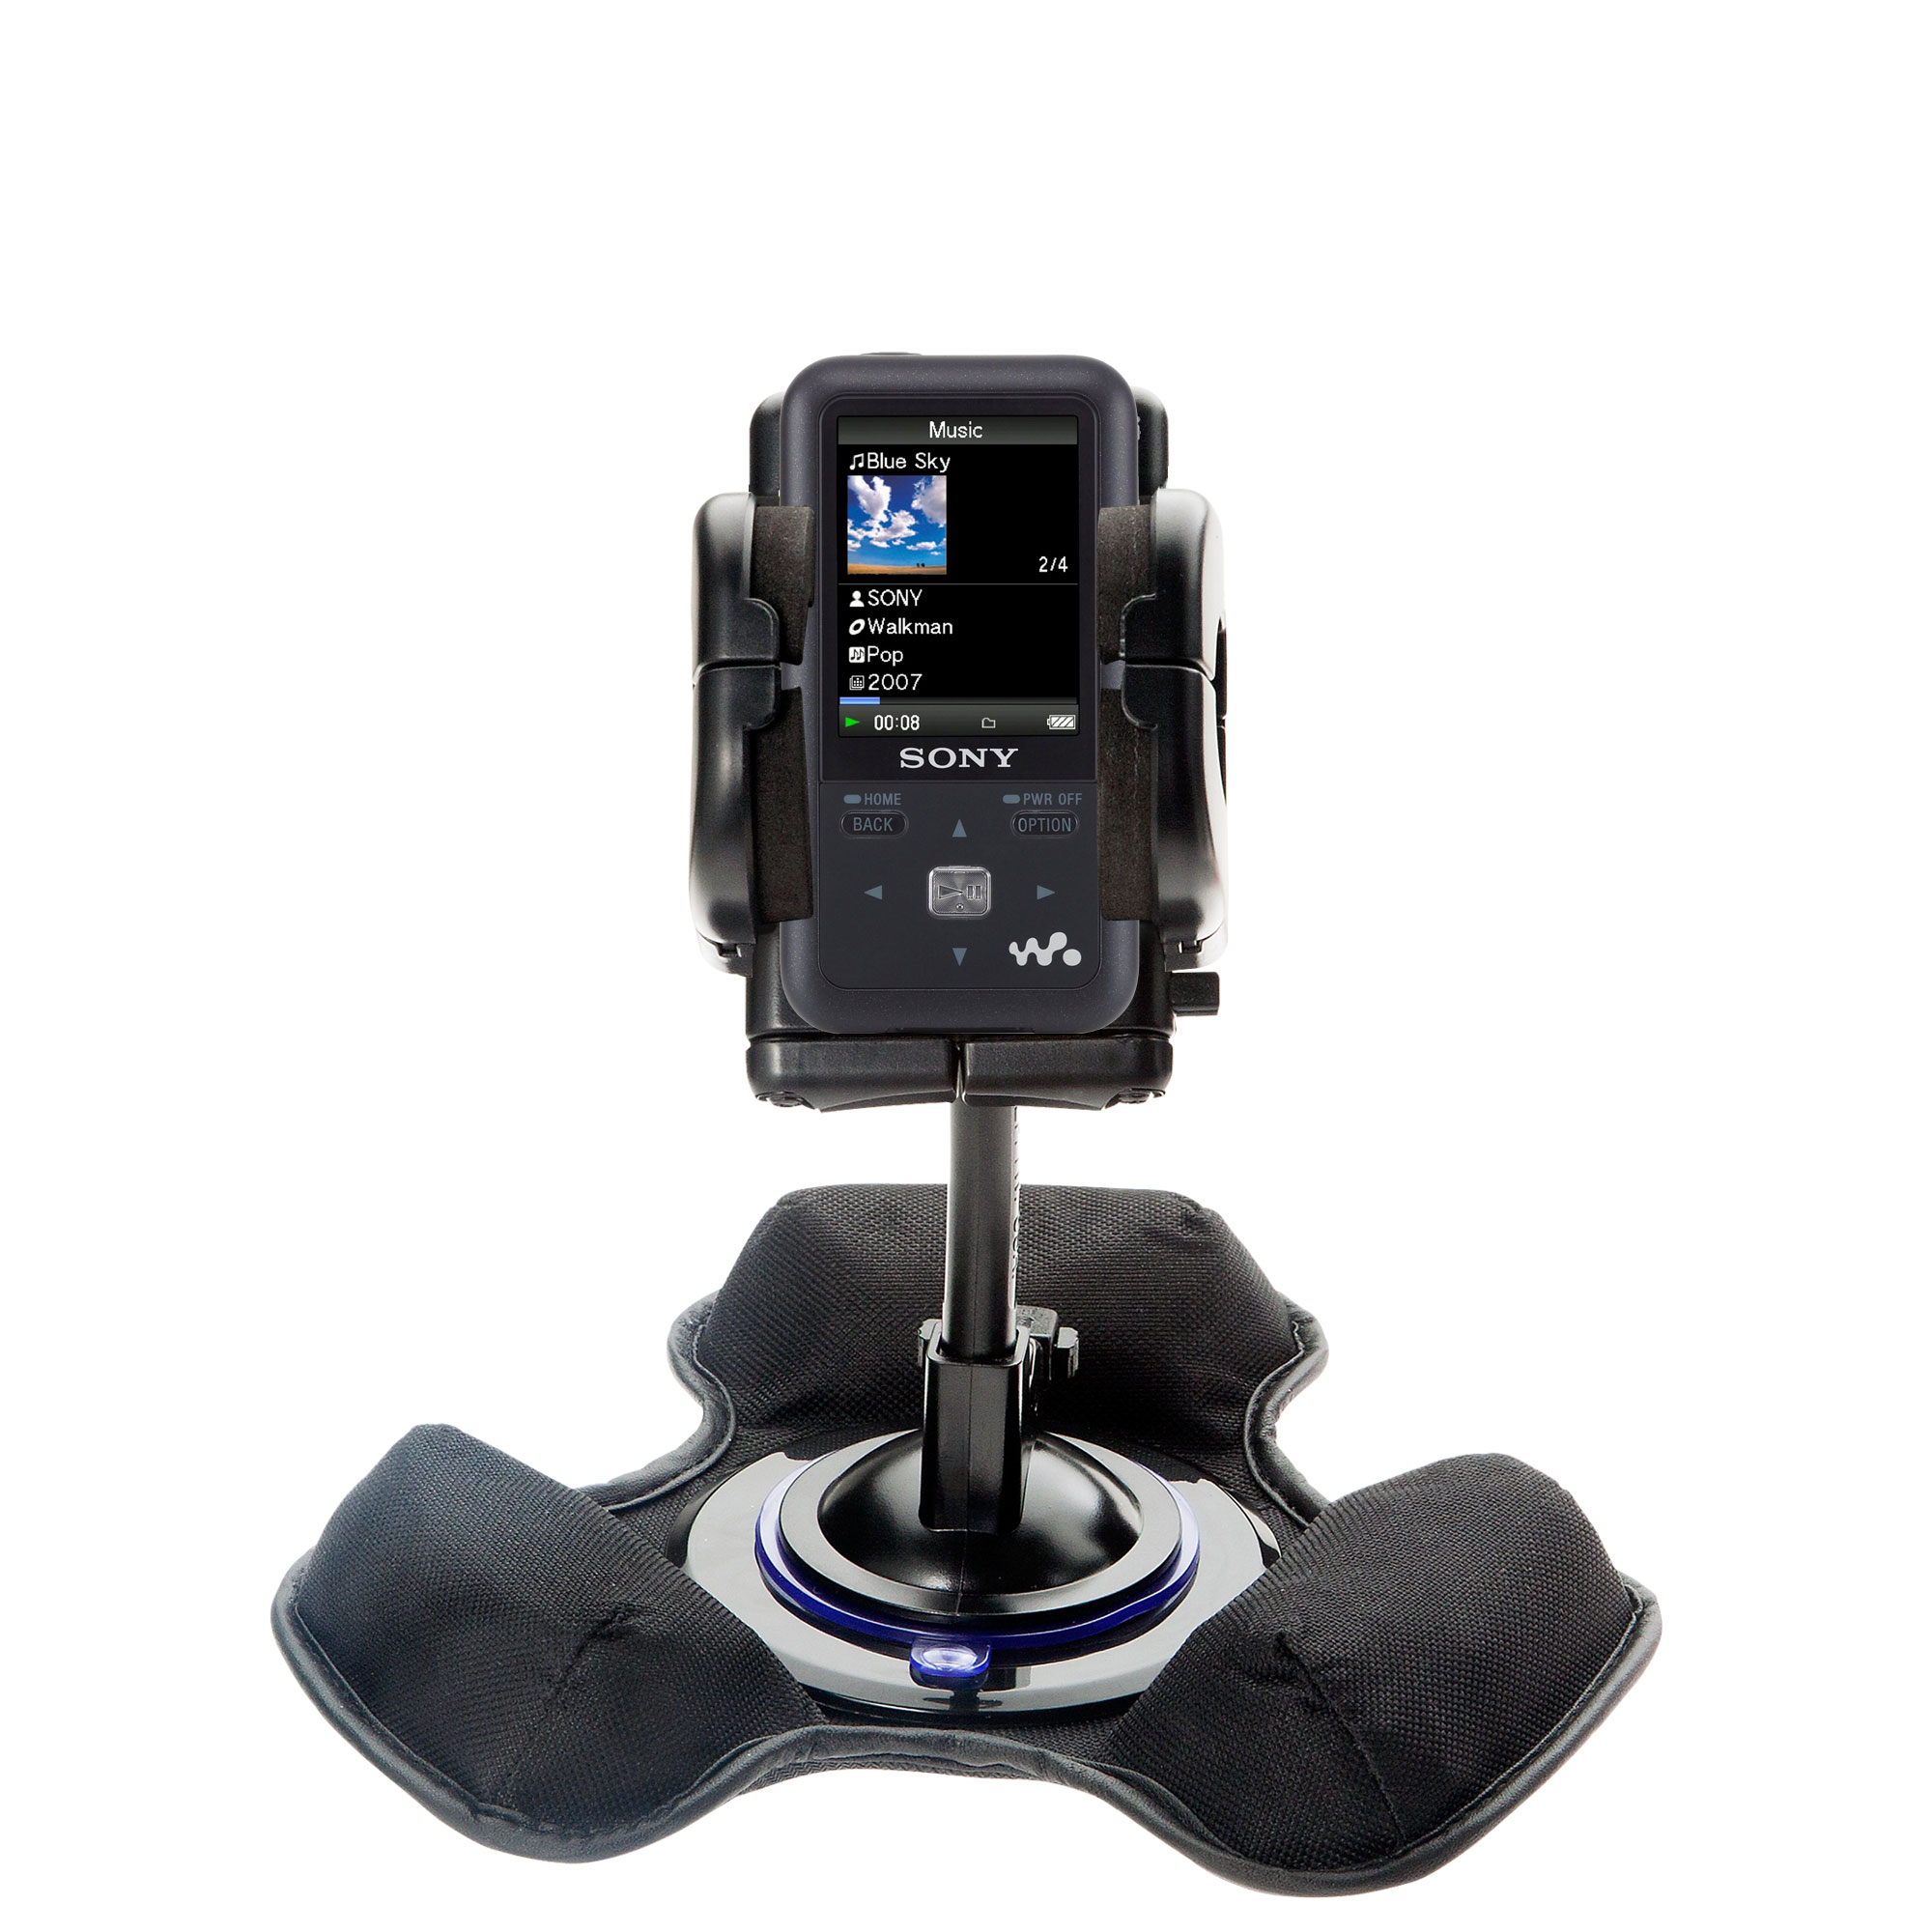 Car / Truck Vehicle Holder Mounting System for Sony Walkman NWZ-S616 Includes Unique Flexible Windshield Suction and Universal Dashboard Mount Options